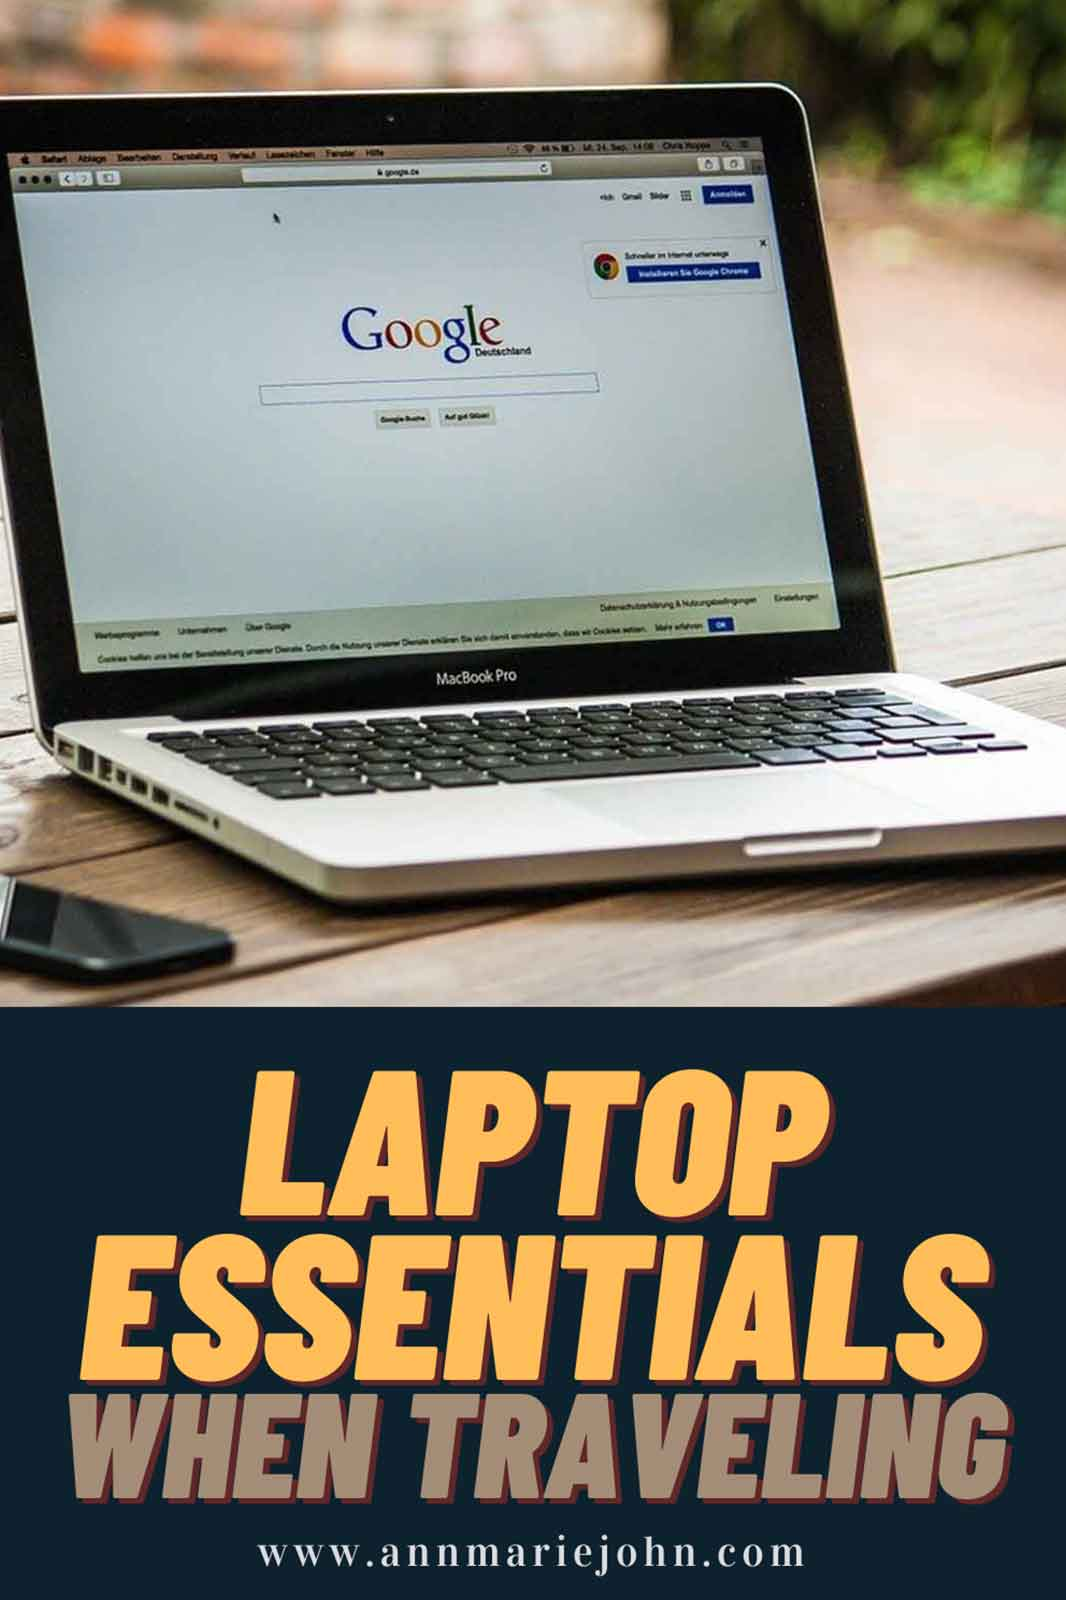 Essential Items to Bring With Your Laptop When Traveling